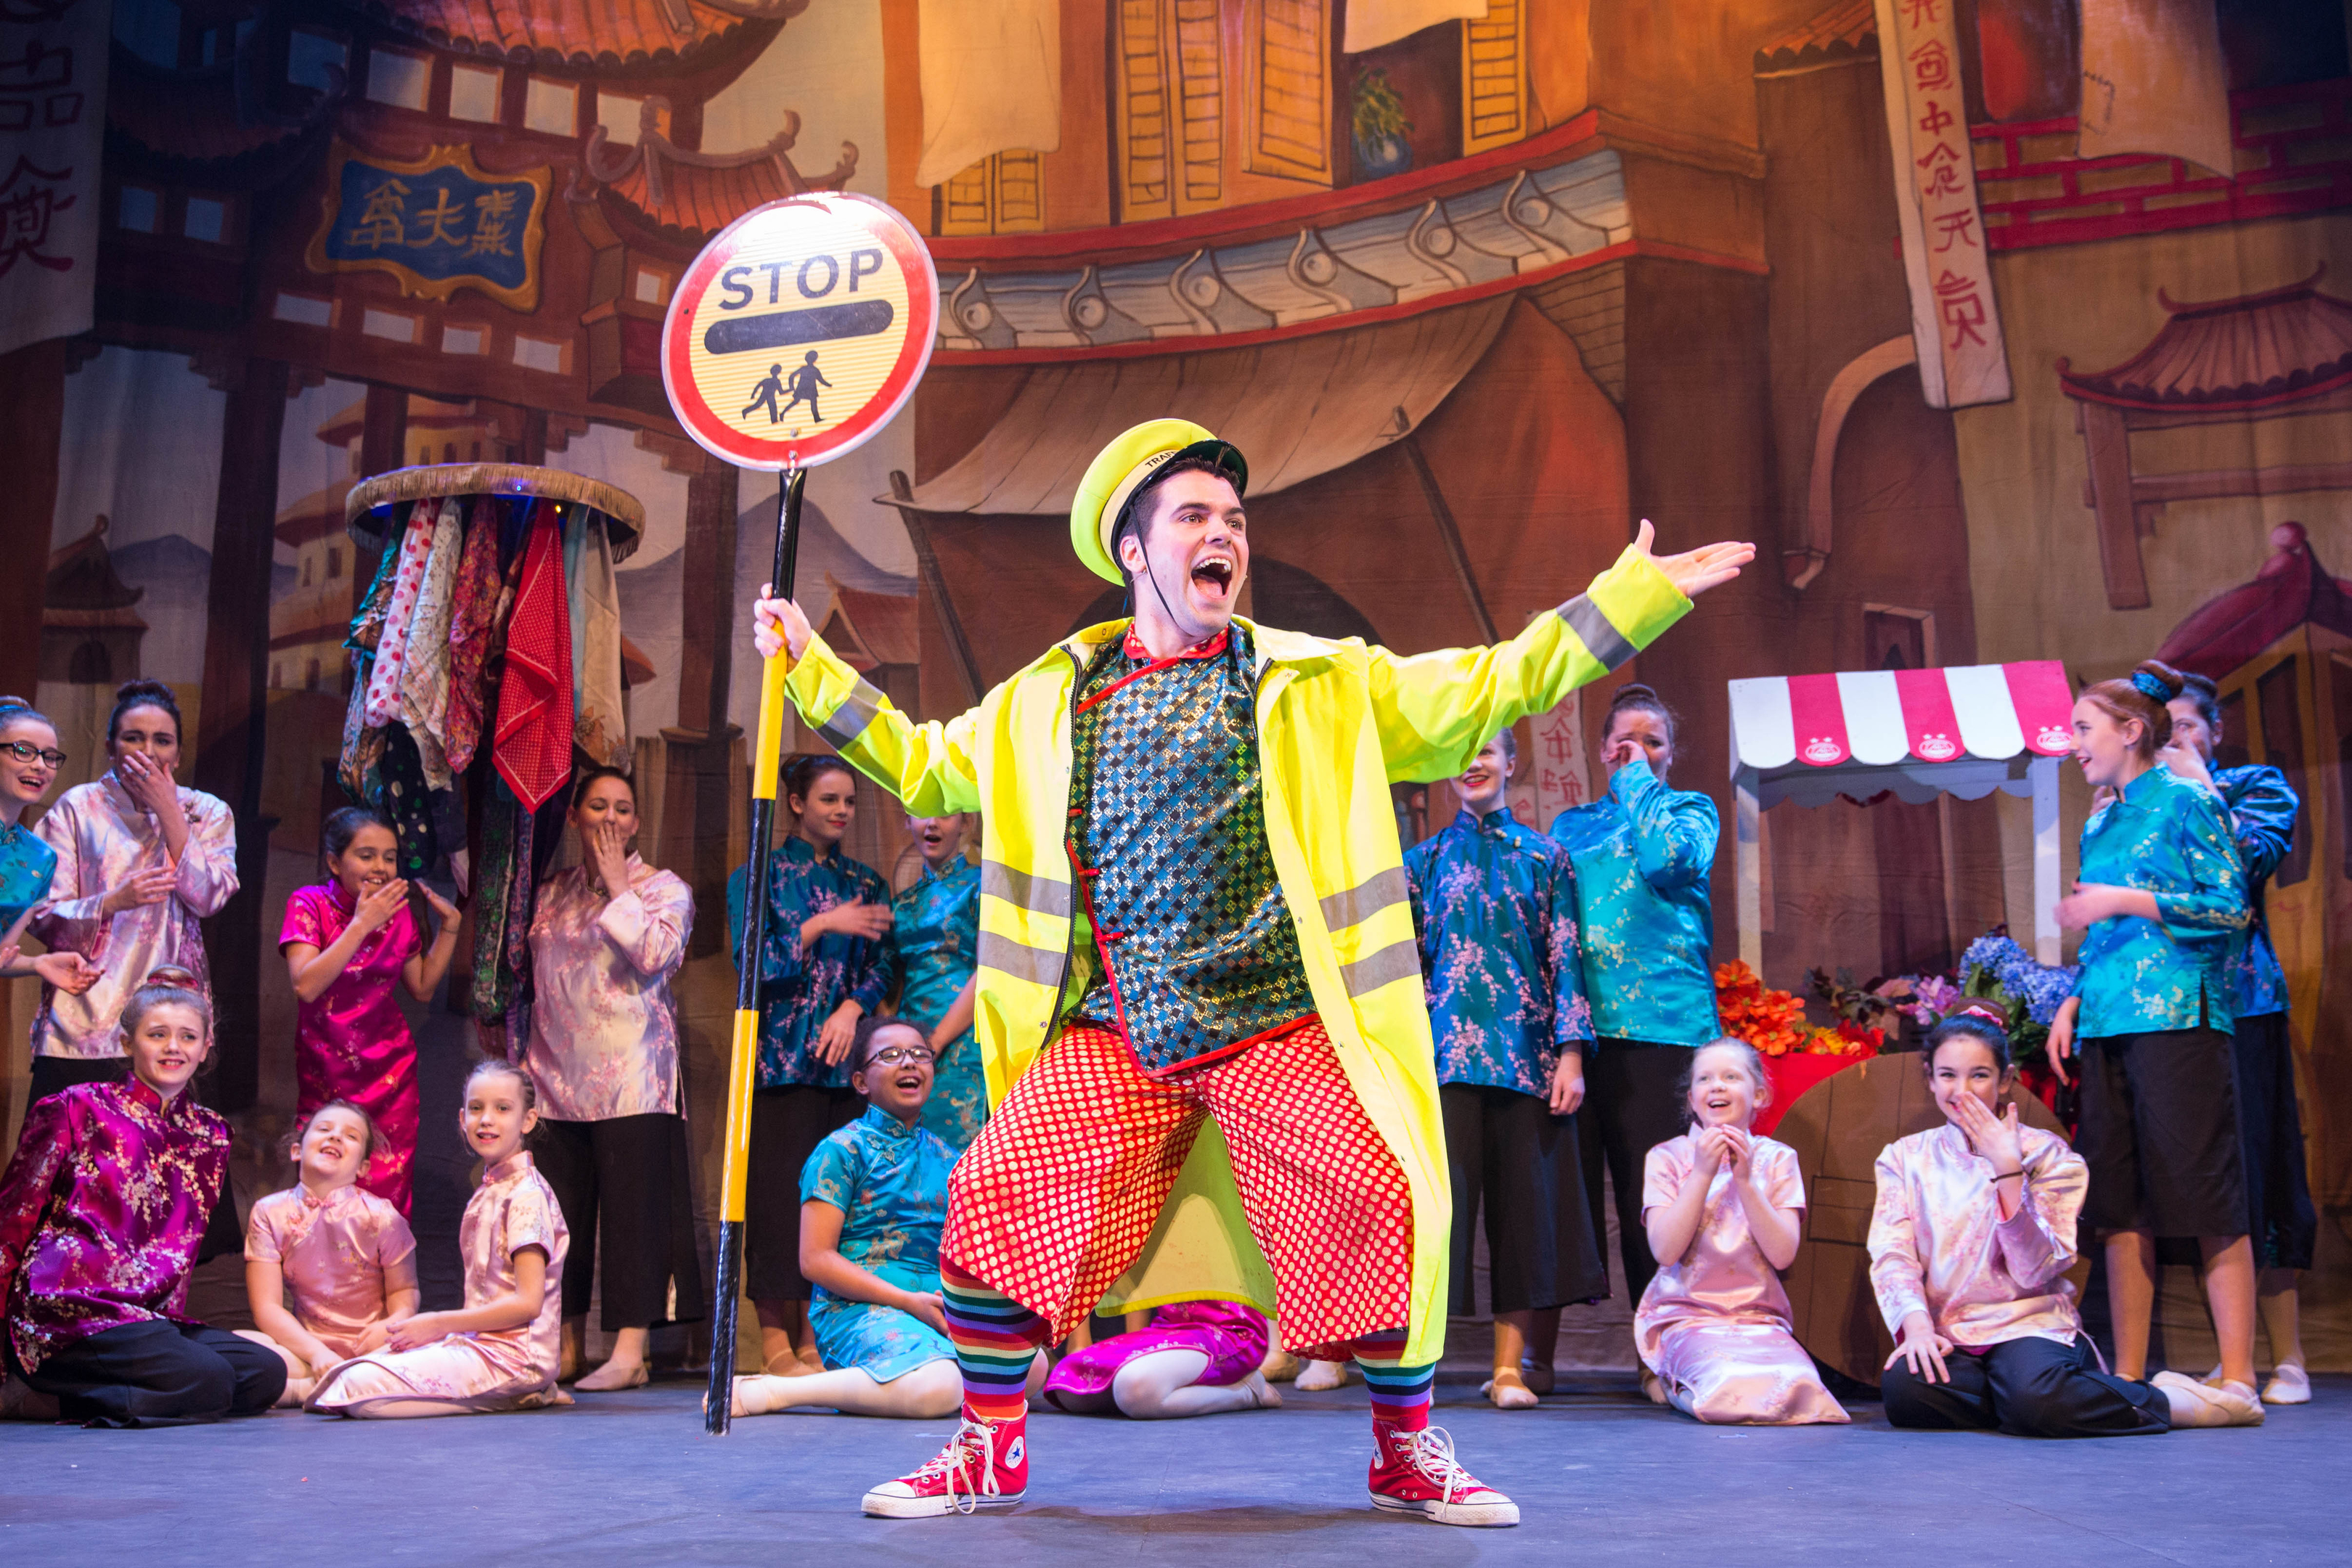 Wishee Washee, played by Micky Innes, in Aladdin at the Tivoli.